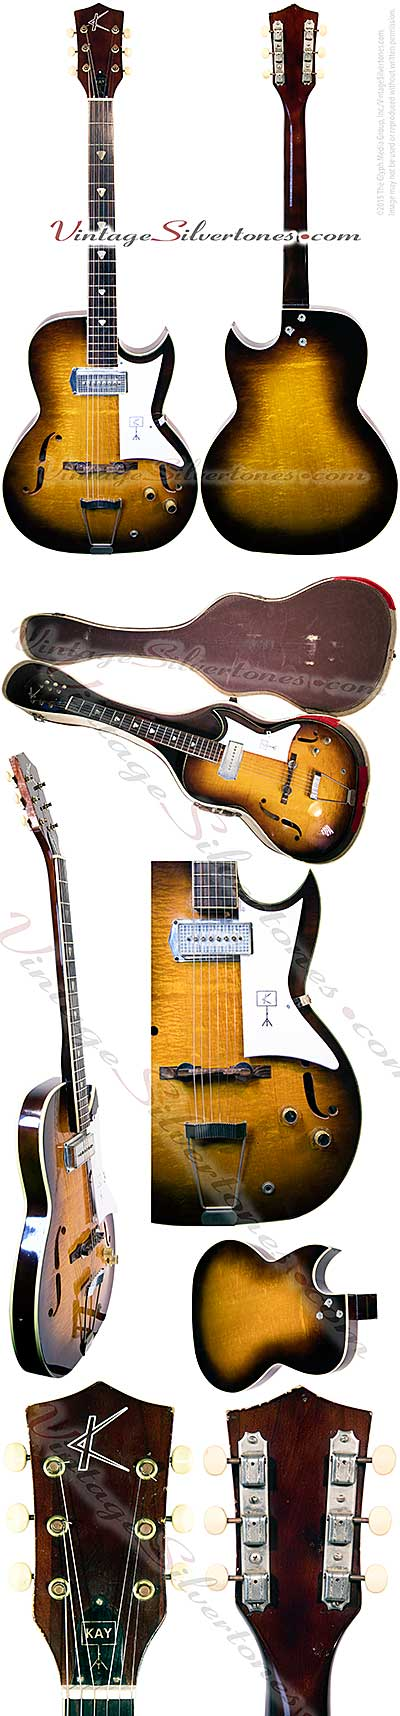 Kay Galaxie, 1 Barney Kessel pu, tobaccoburst, single cutaway, Chicago 1961